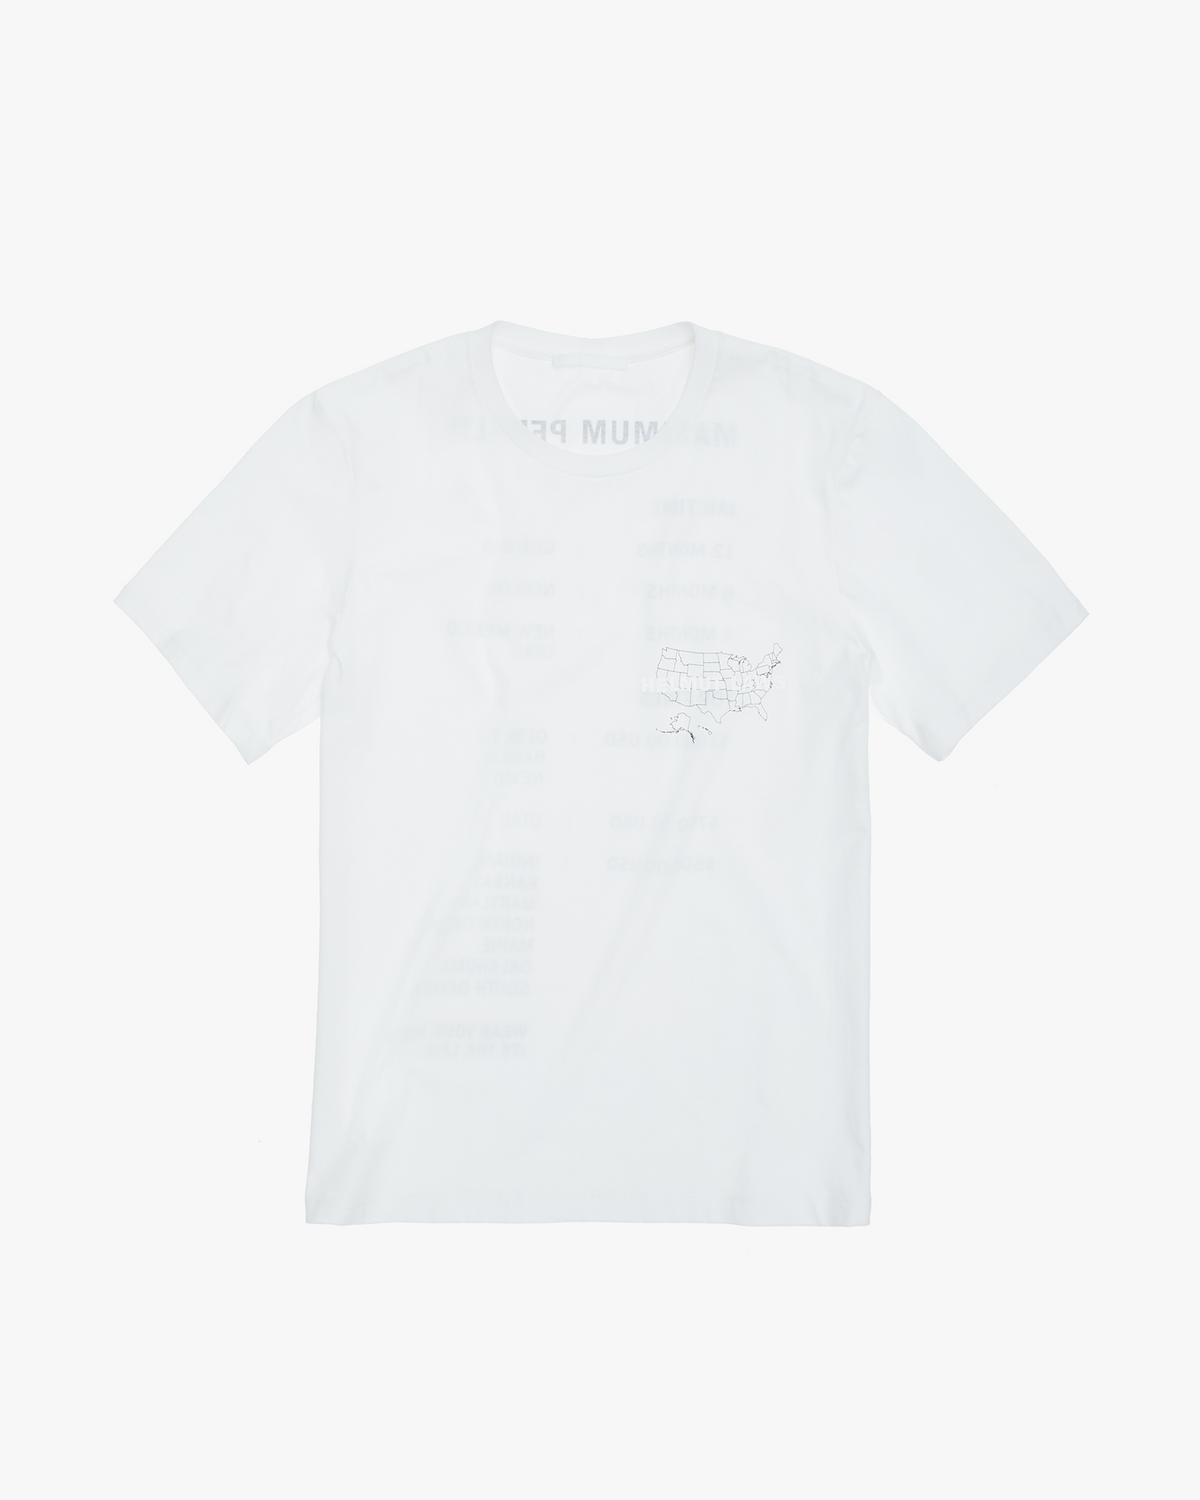 Helmut Laws T-Shirt